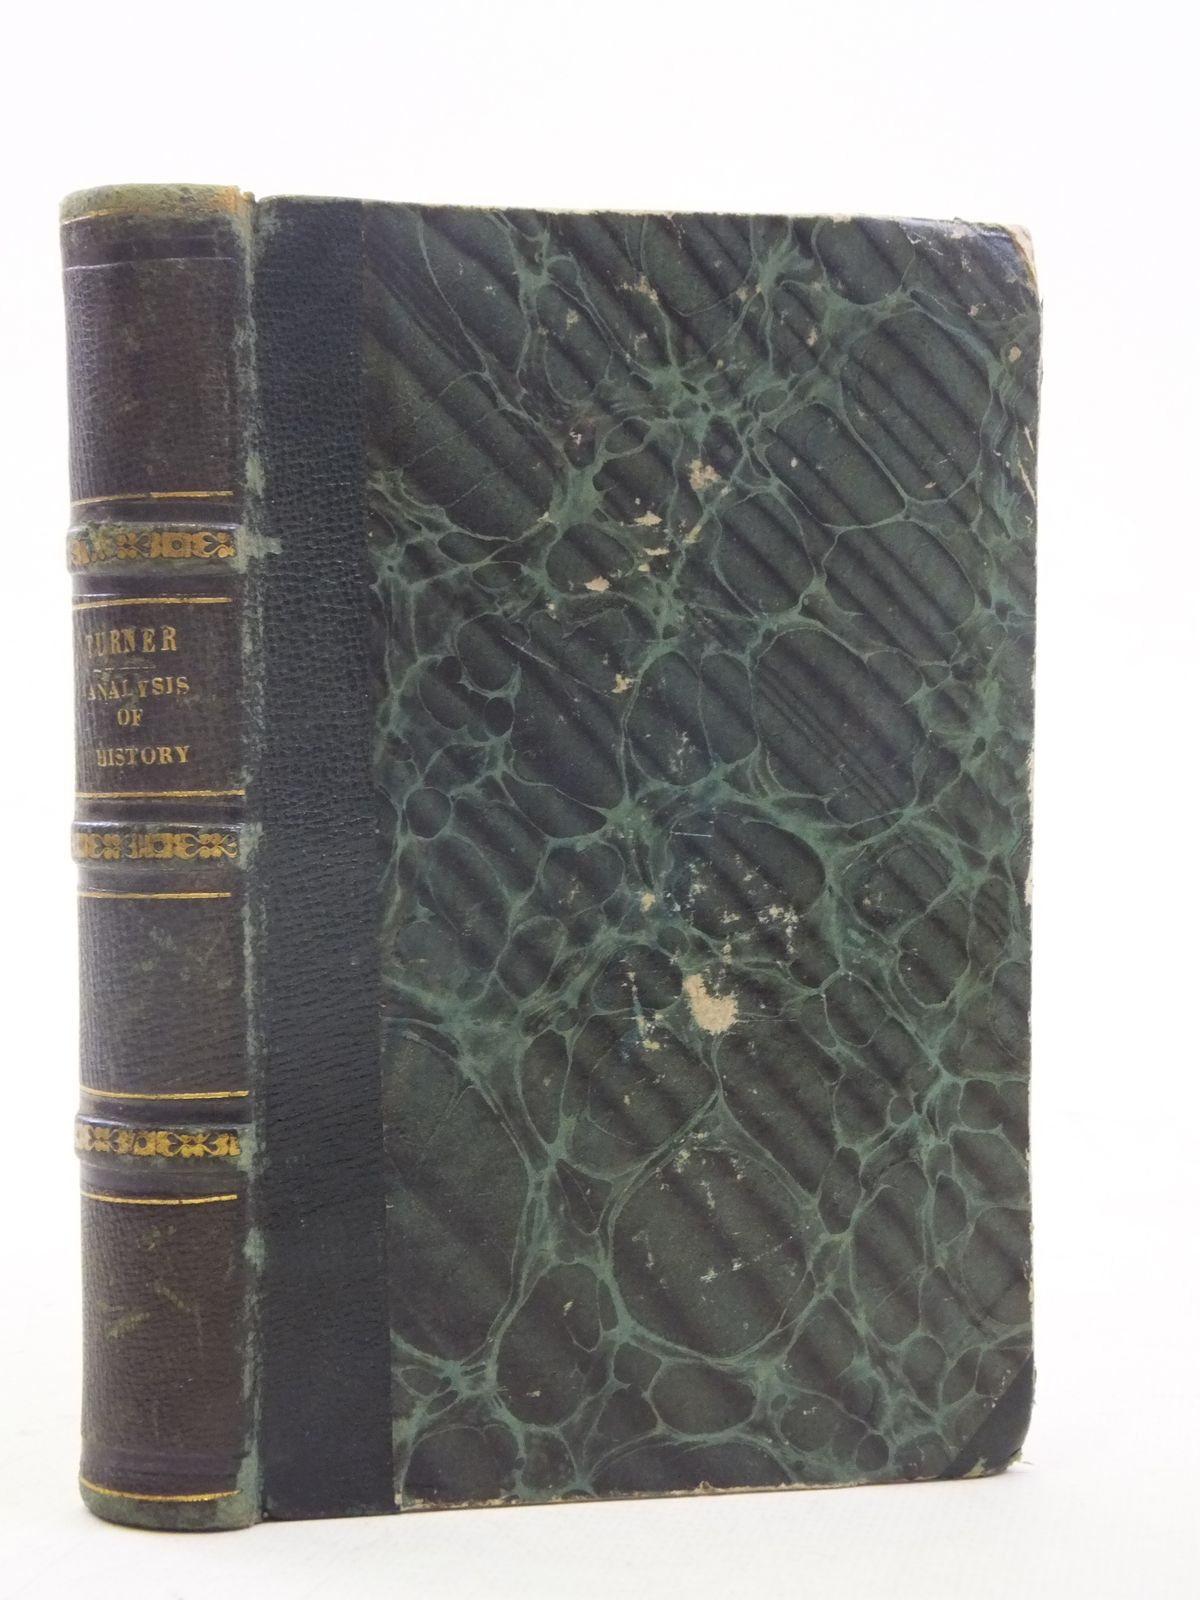 Photo of HEADS OF AN ANALYSIS OF HISTORY (3 VOLUMES IN ONE) written by Turner, Dawson W. published by John W. Parker And Son (STOCK CODE: 1606790)  for sale by Stella & Rose's Books